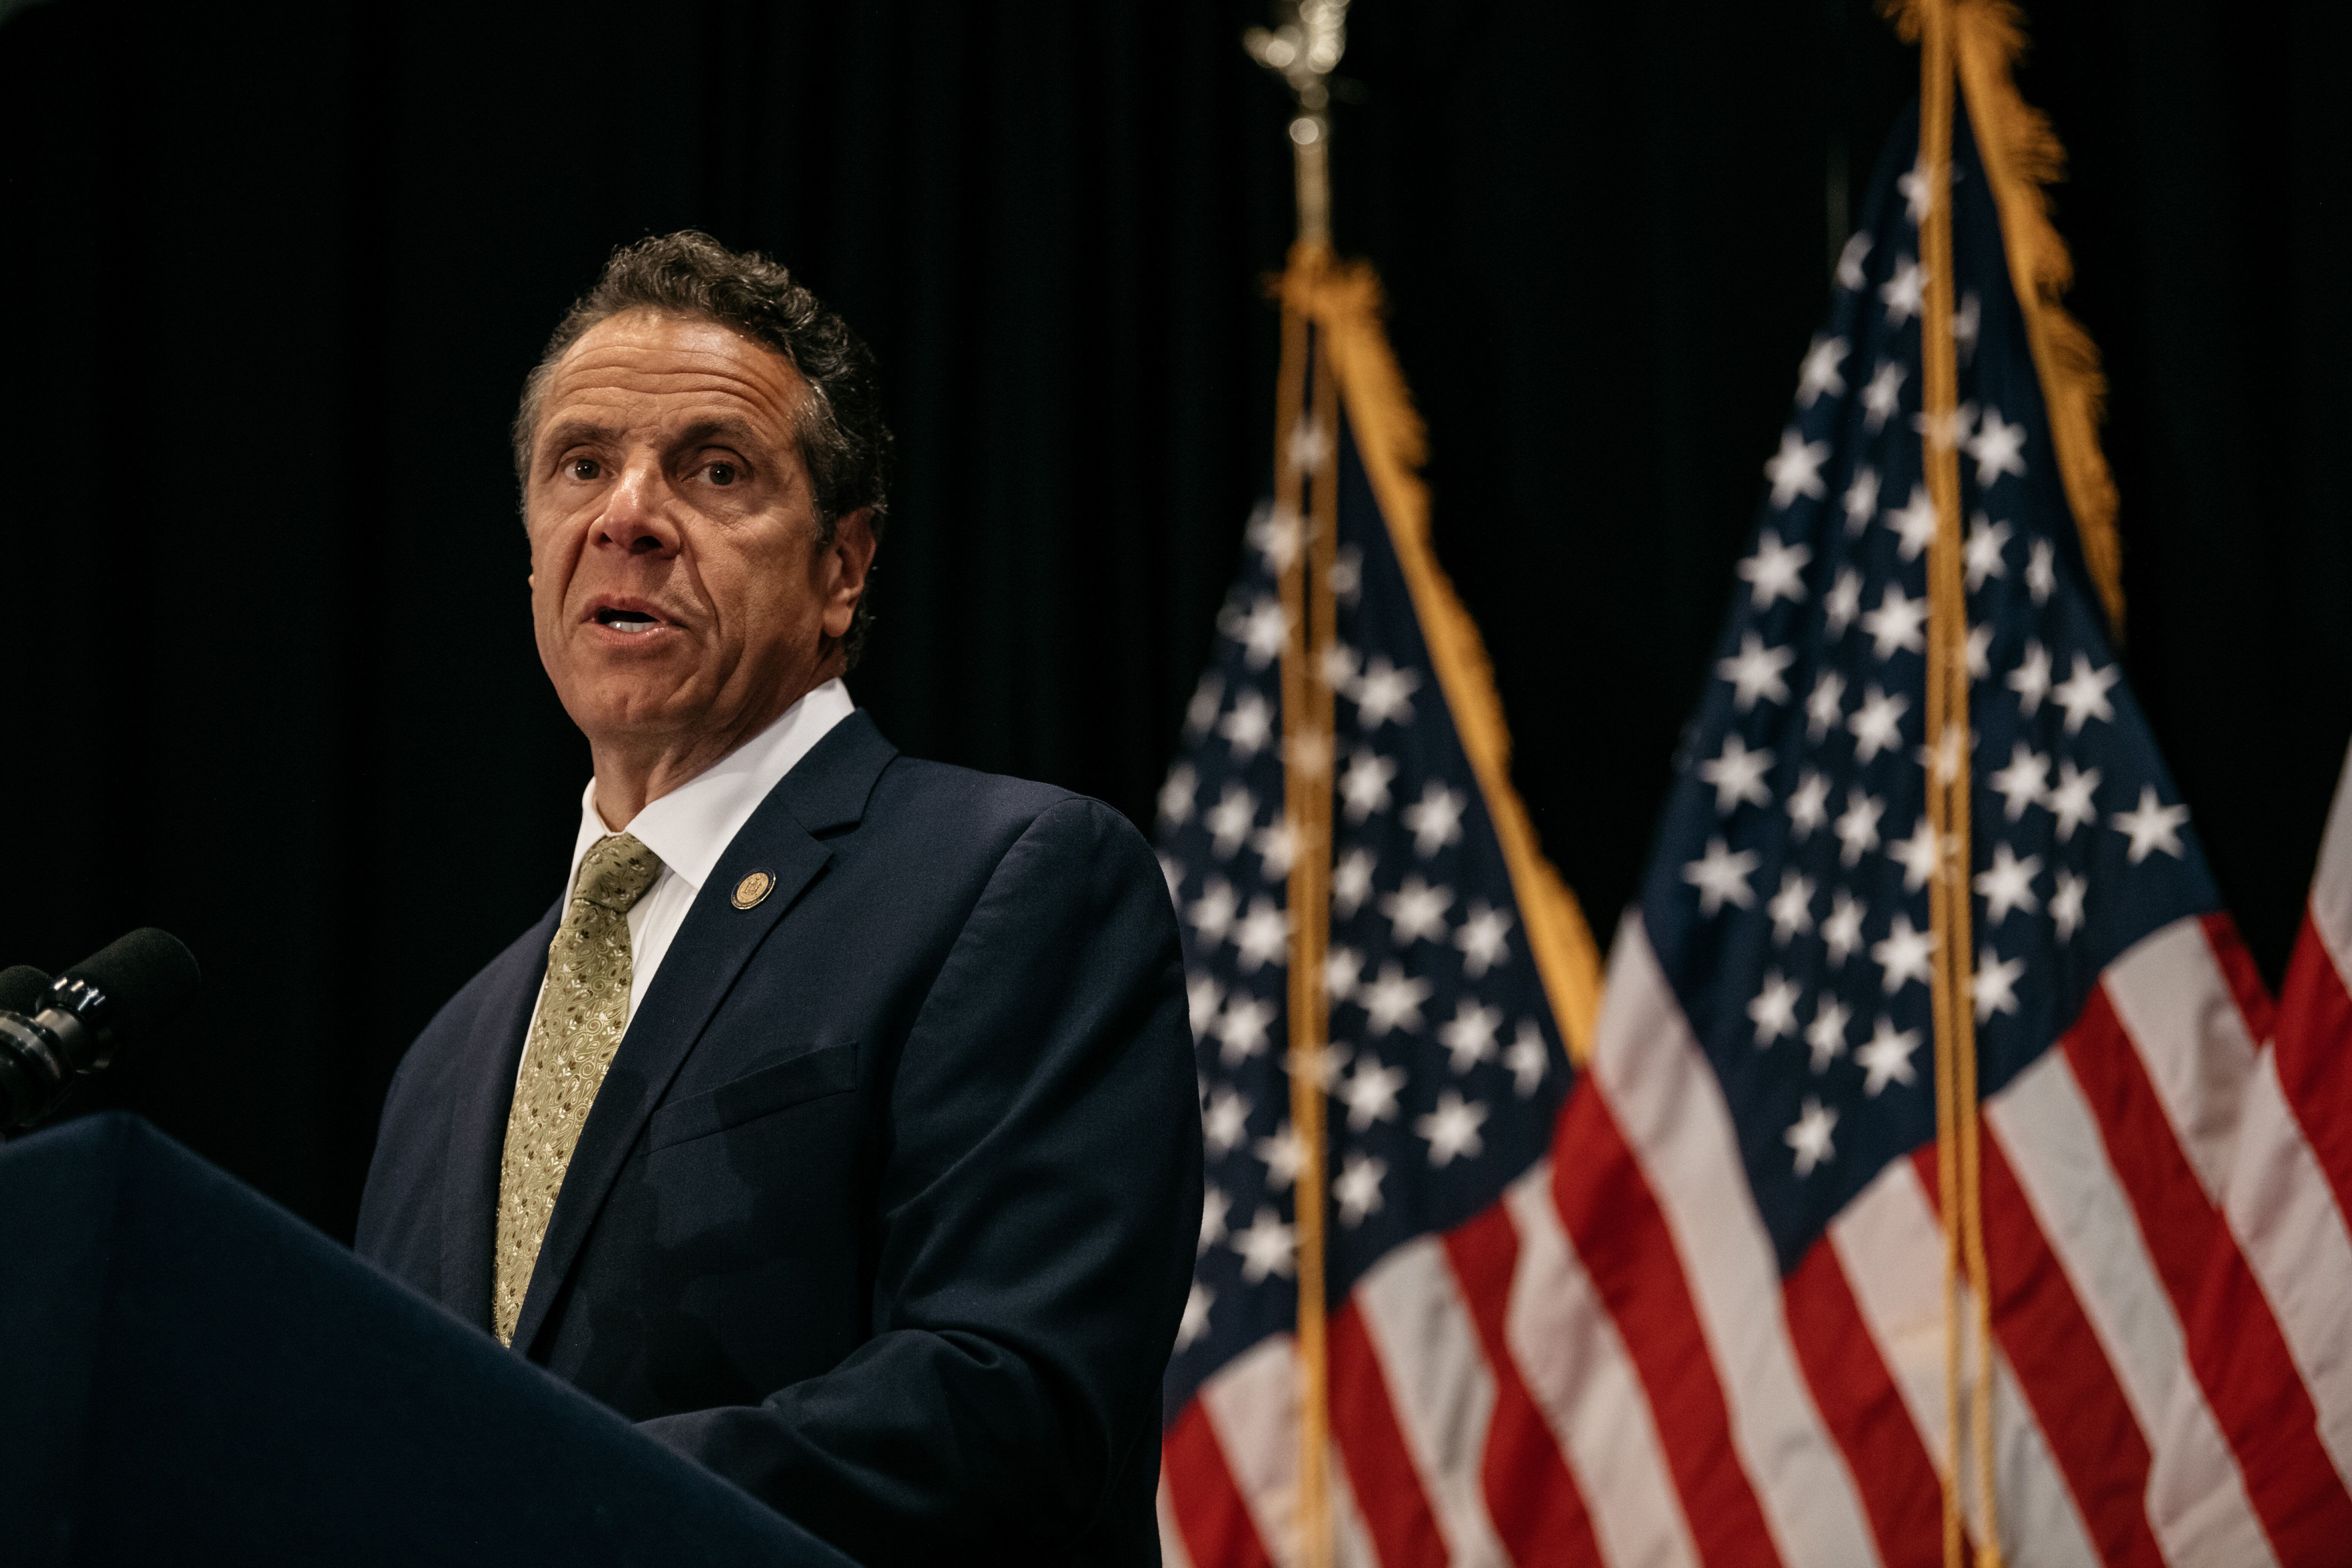 New York Gov. Andrew Cuomo (D) signed a measure Wednesday limiting schools' capacity to arm their staff.